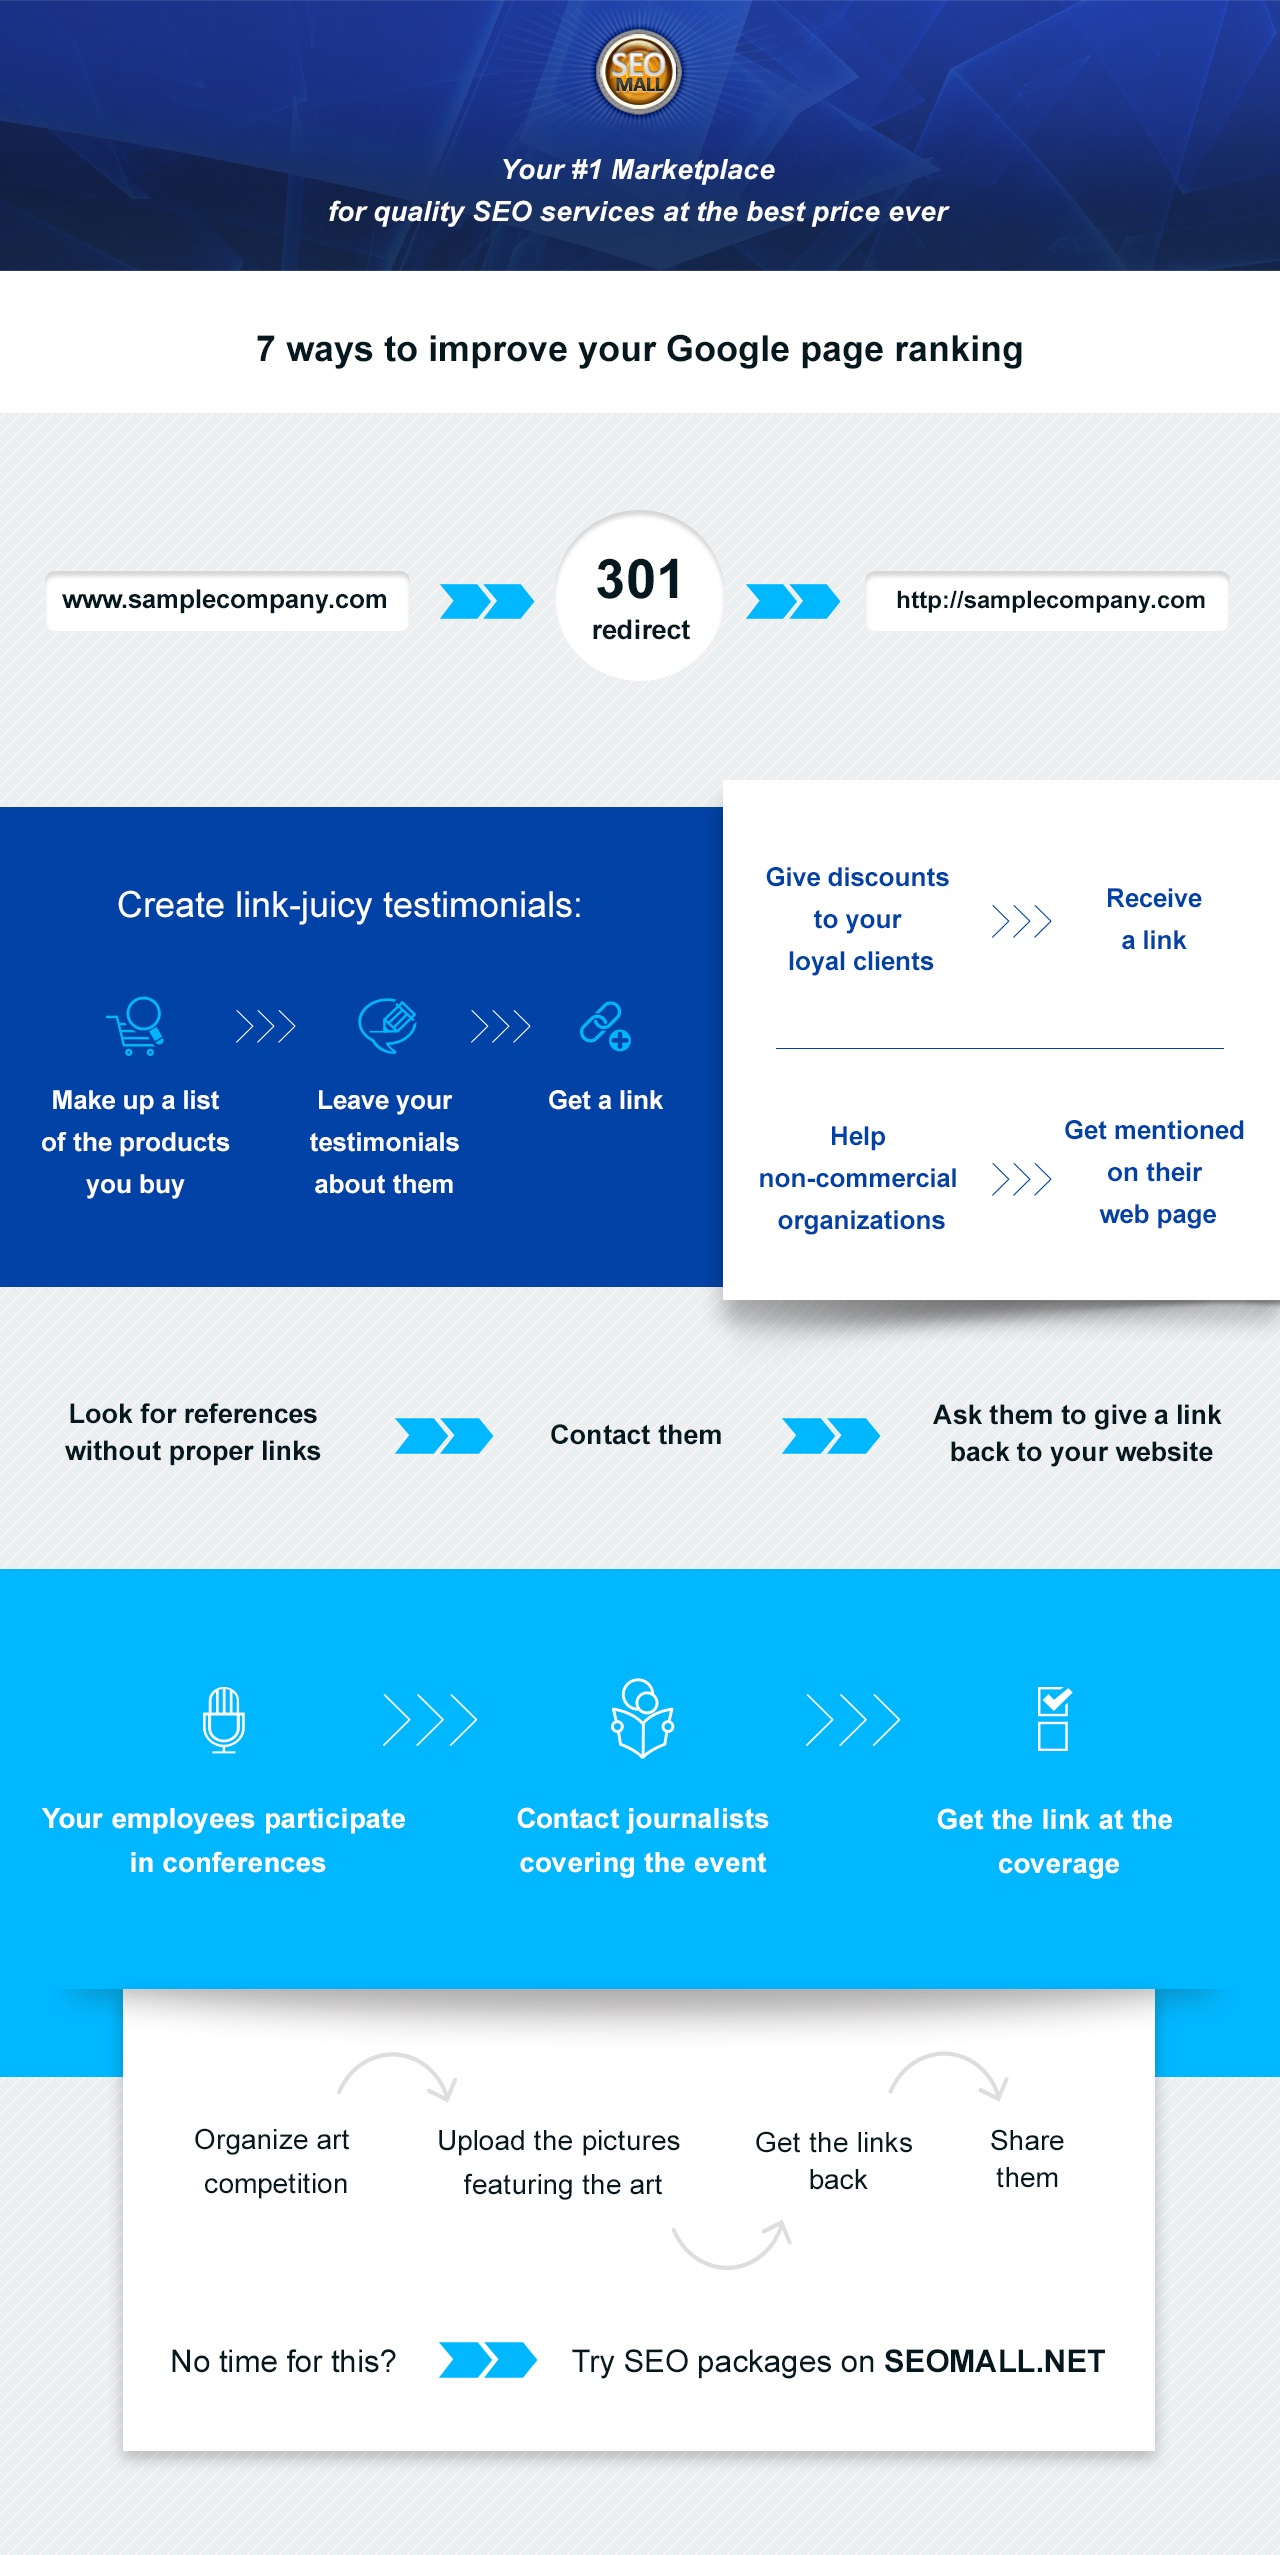 7 ways to improve your Google page ranking infografic